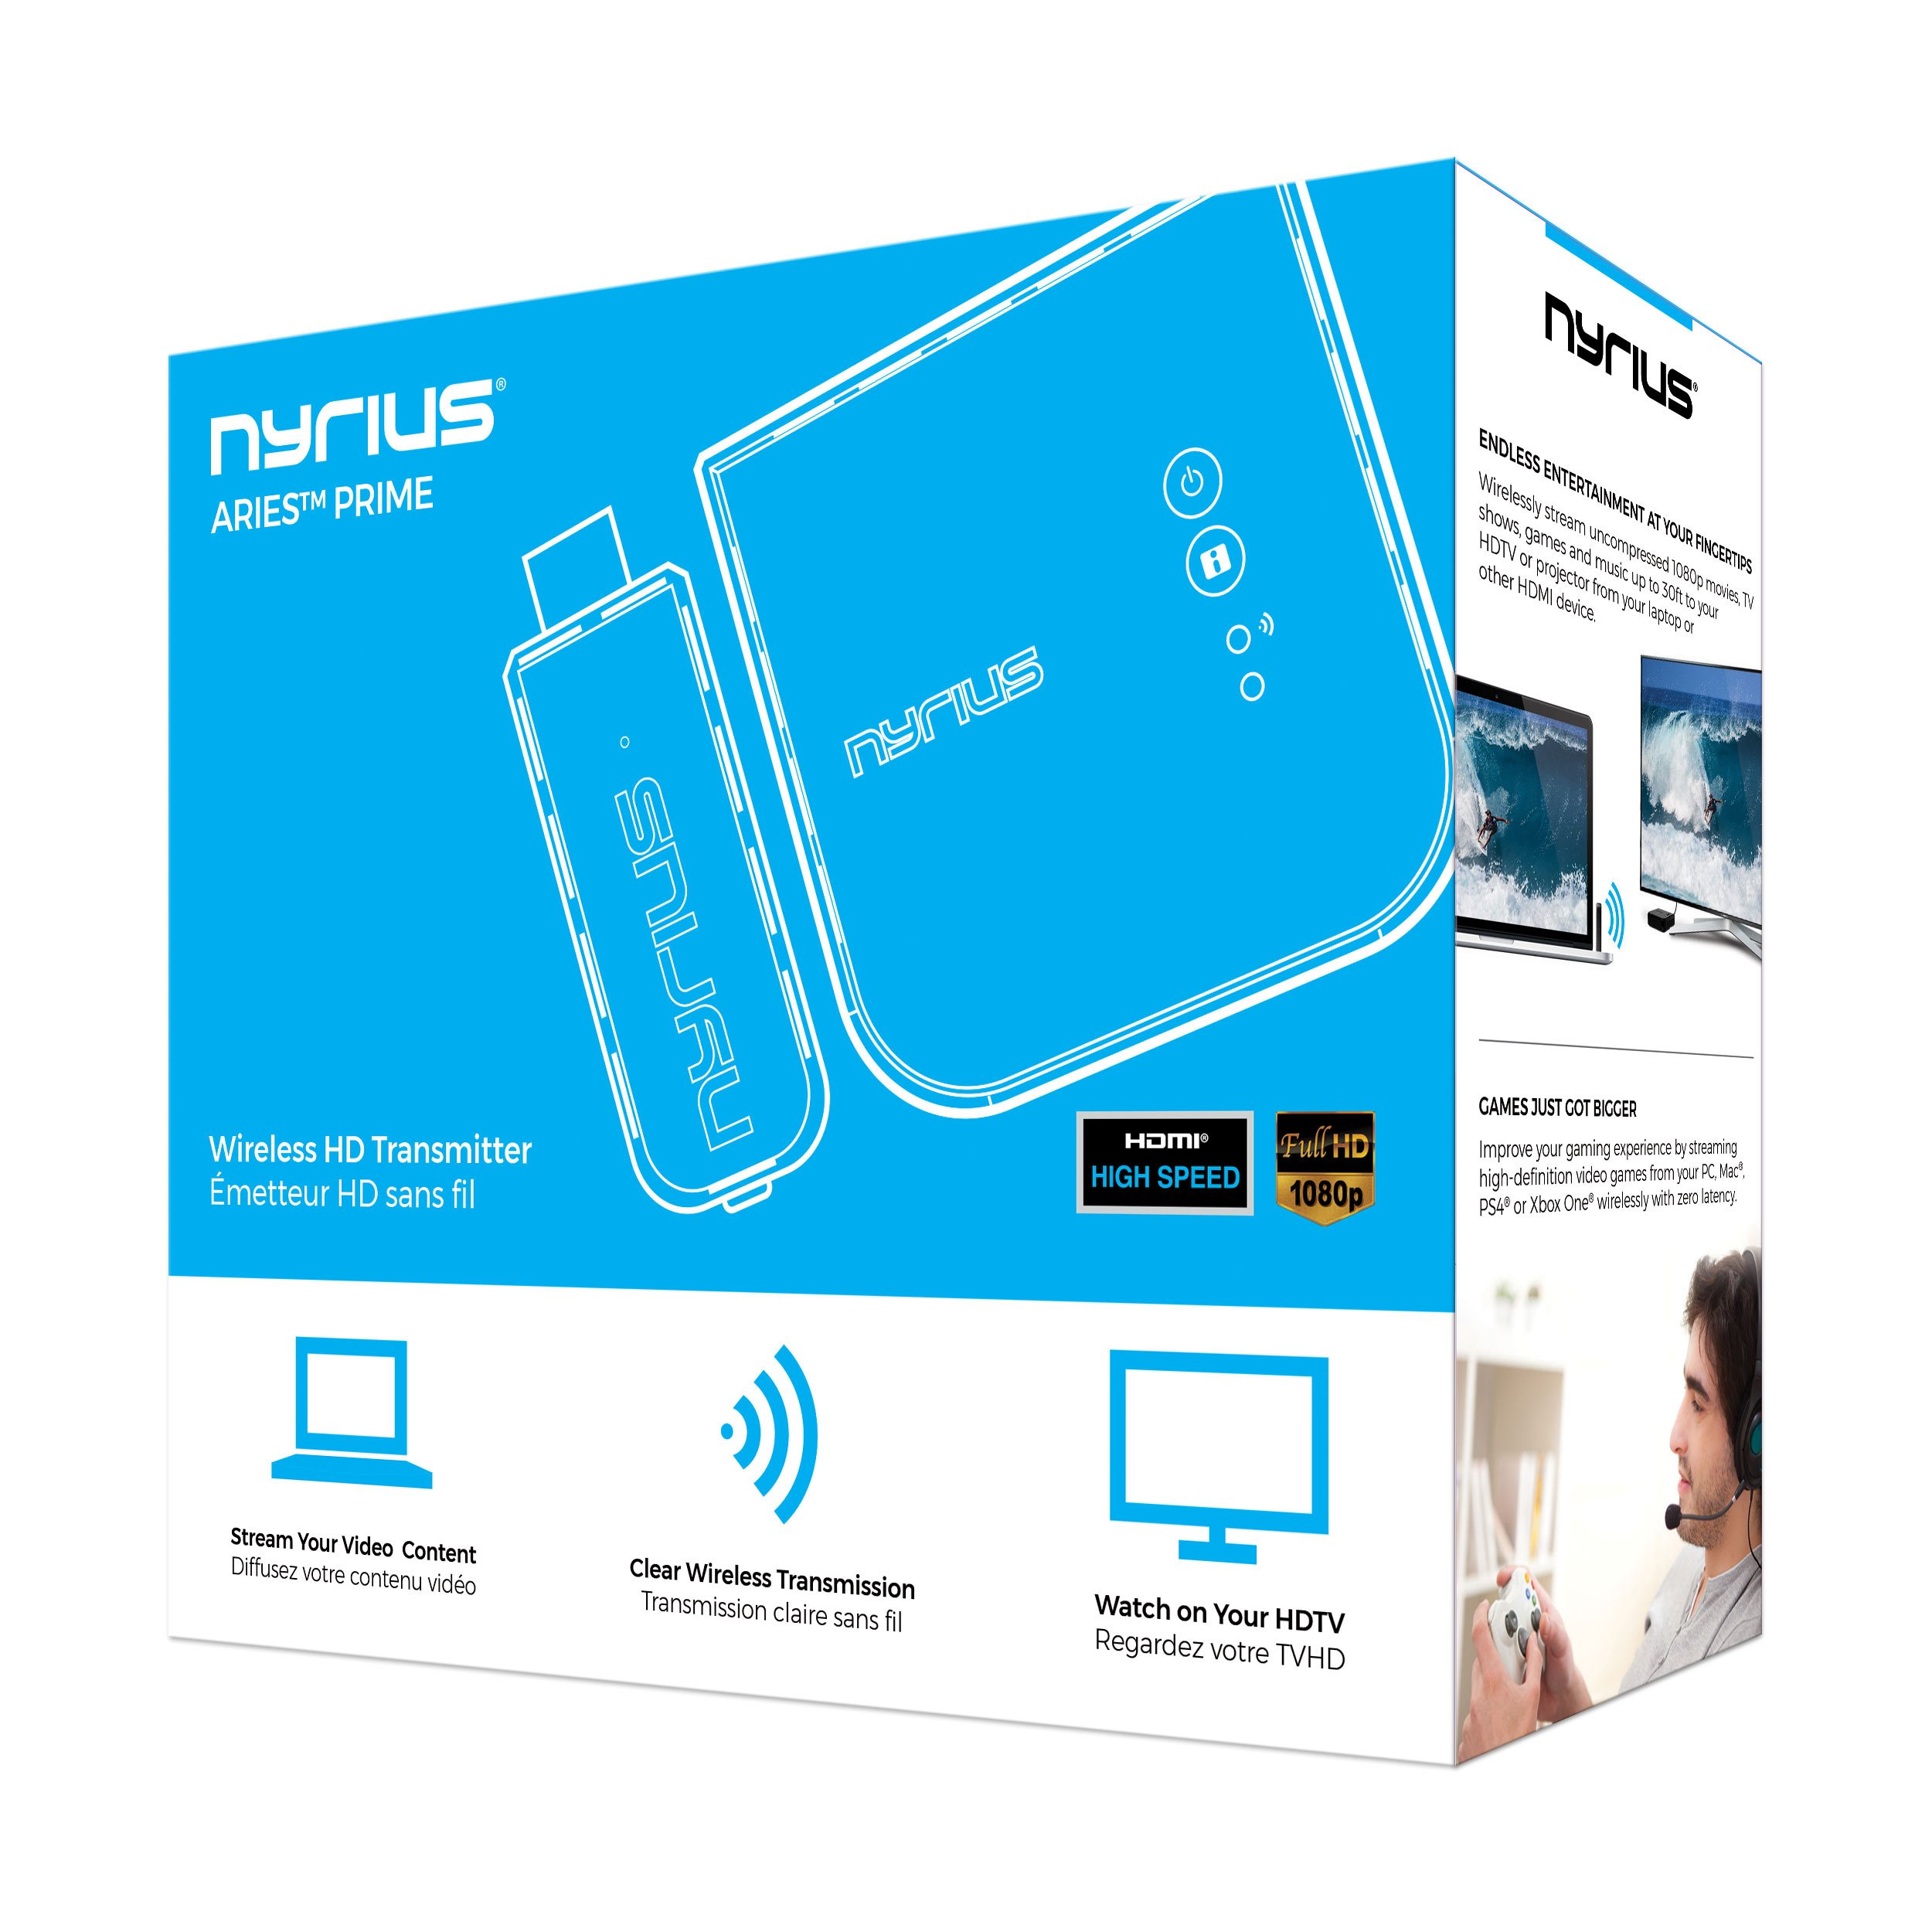 Nyrius Aries Prime Wireless Video HDMI Transmitter & Receiver for Streaming HD 1080p 3D Video & Digital Audio from Laptop, PC, Cable, Netflix, YouTube, PS4, Xbox One to HDTV/Projector (NPCS549) by Nyrius (Image #9)